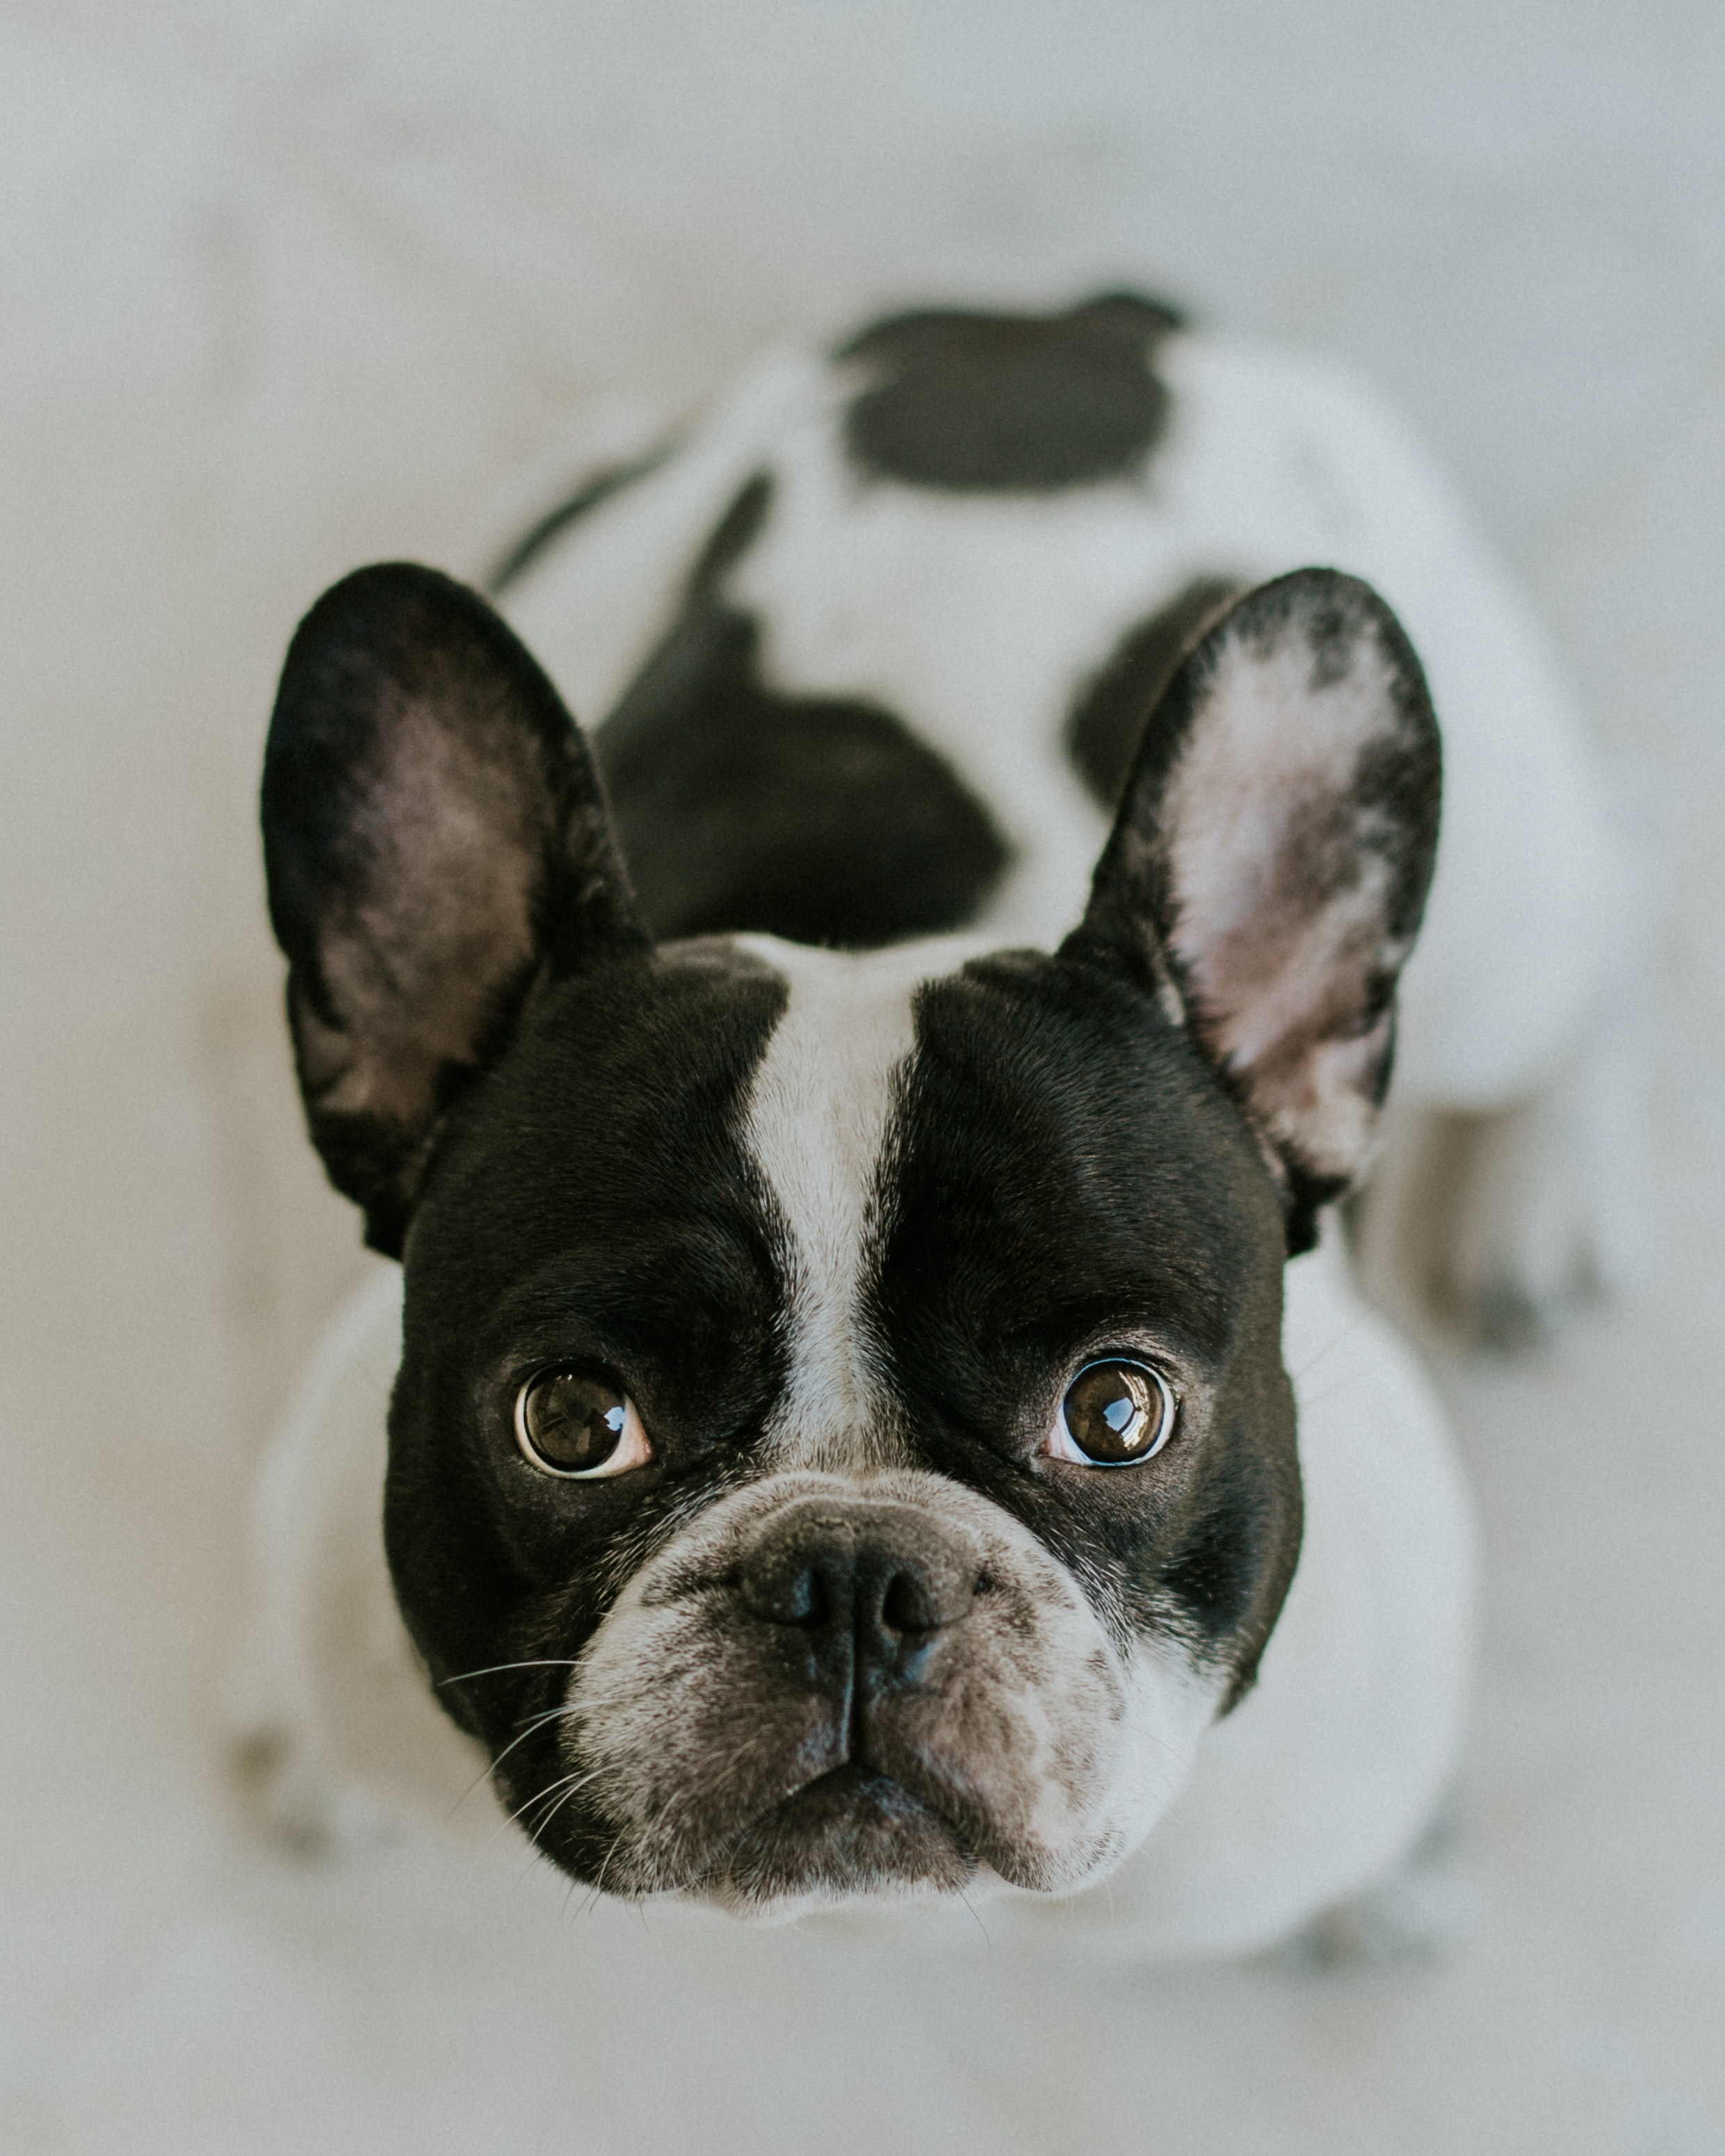 adult Boston terrier sitting on white surface